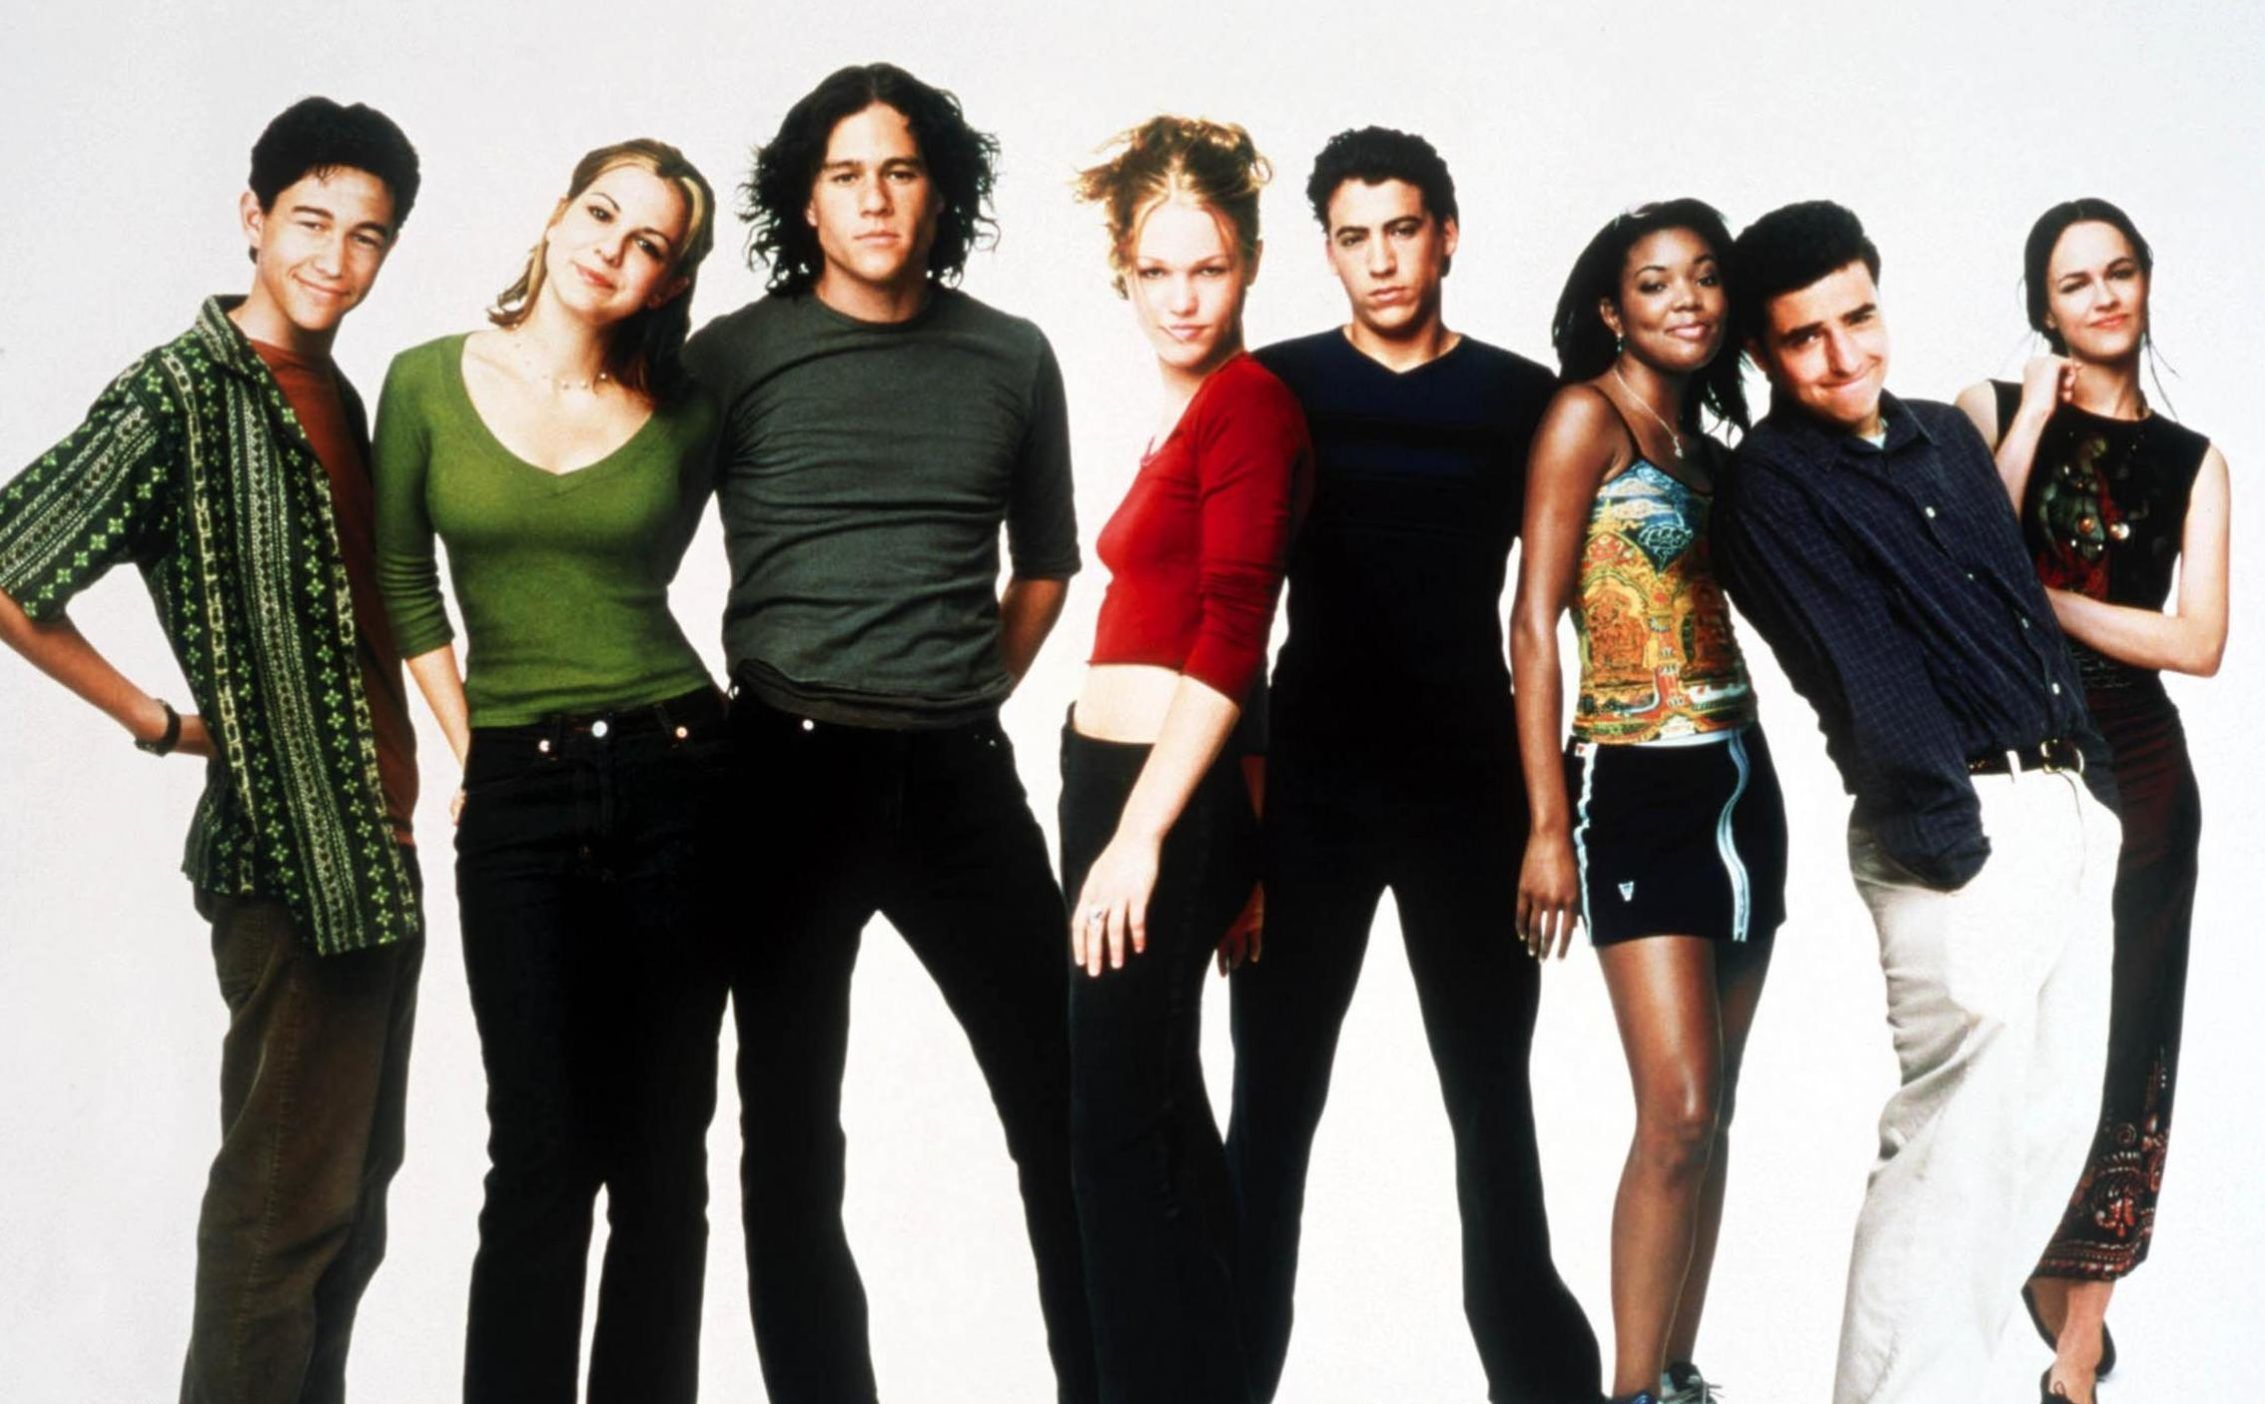 10 things i hate about you screening at the ultimate date night